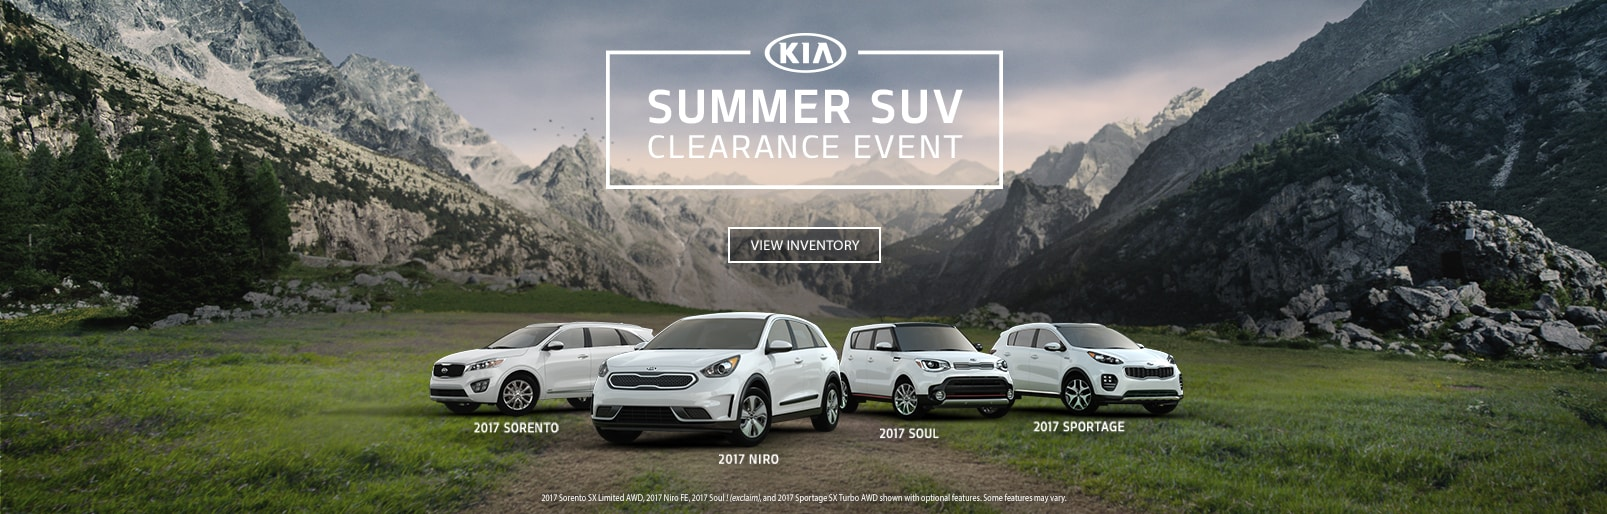 Summer SUV Clearance Event